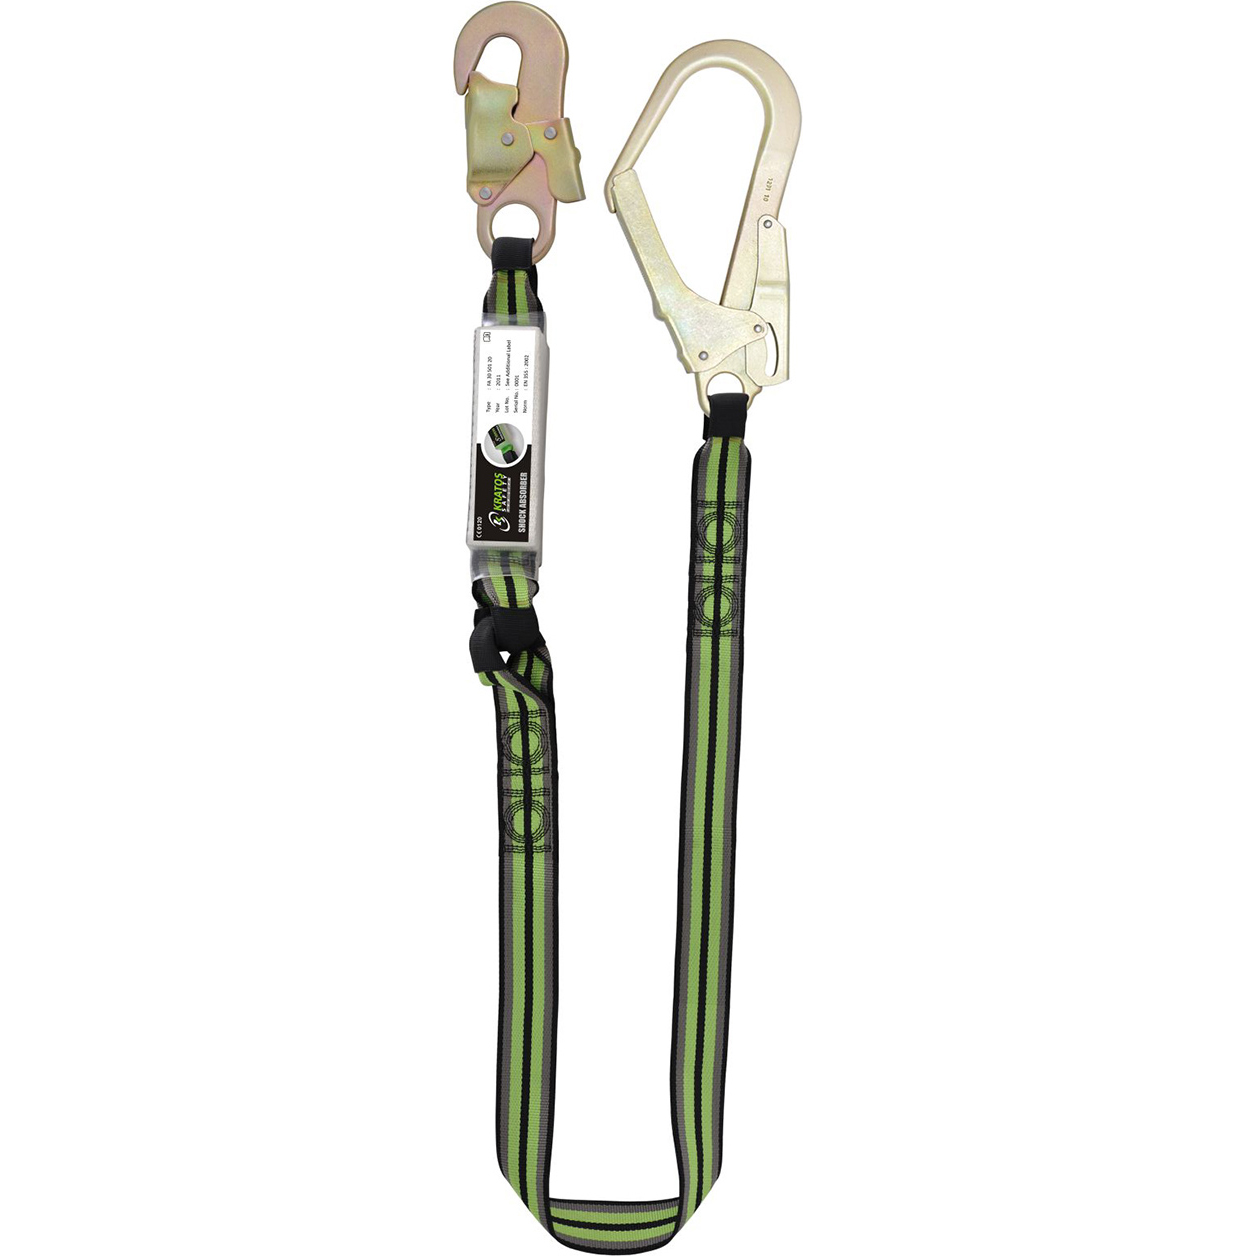 DIY & Tools Kratos 1.5M Lanyard plus Scaff Hook Ref HSFA30303 *Up to 3 Day Leadtime*